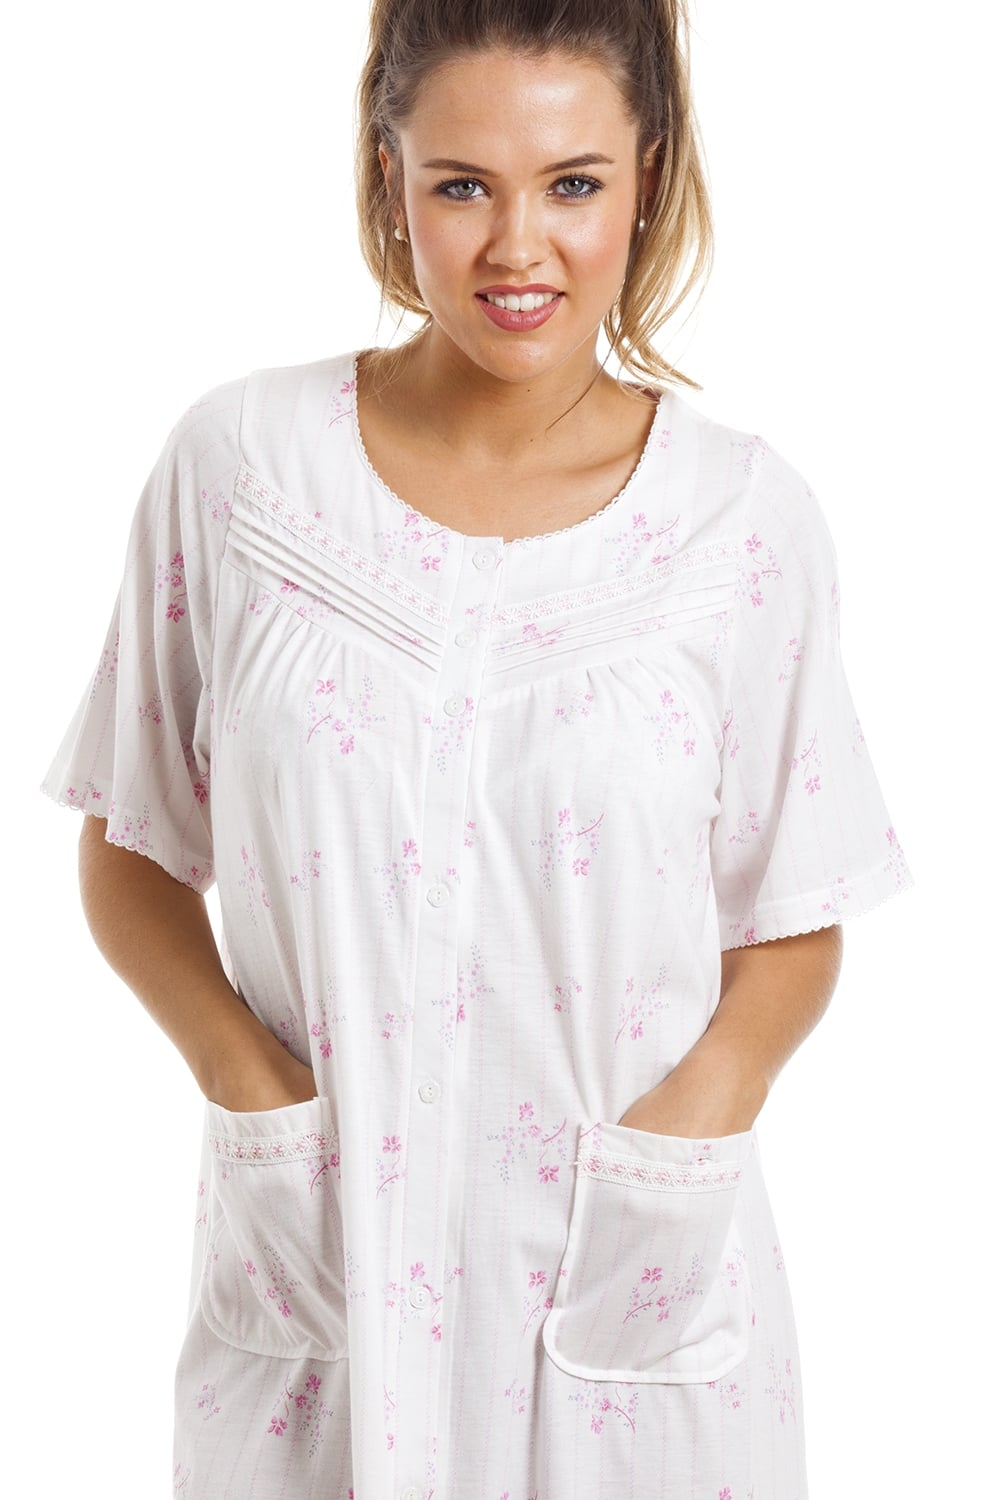 Camille Soft Cosy Knee Length Short Sleeve Pink Floral Button Front  Nightdress e5b412f29